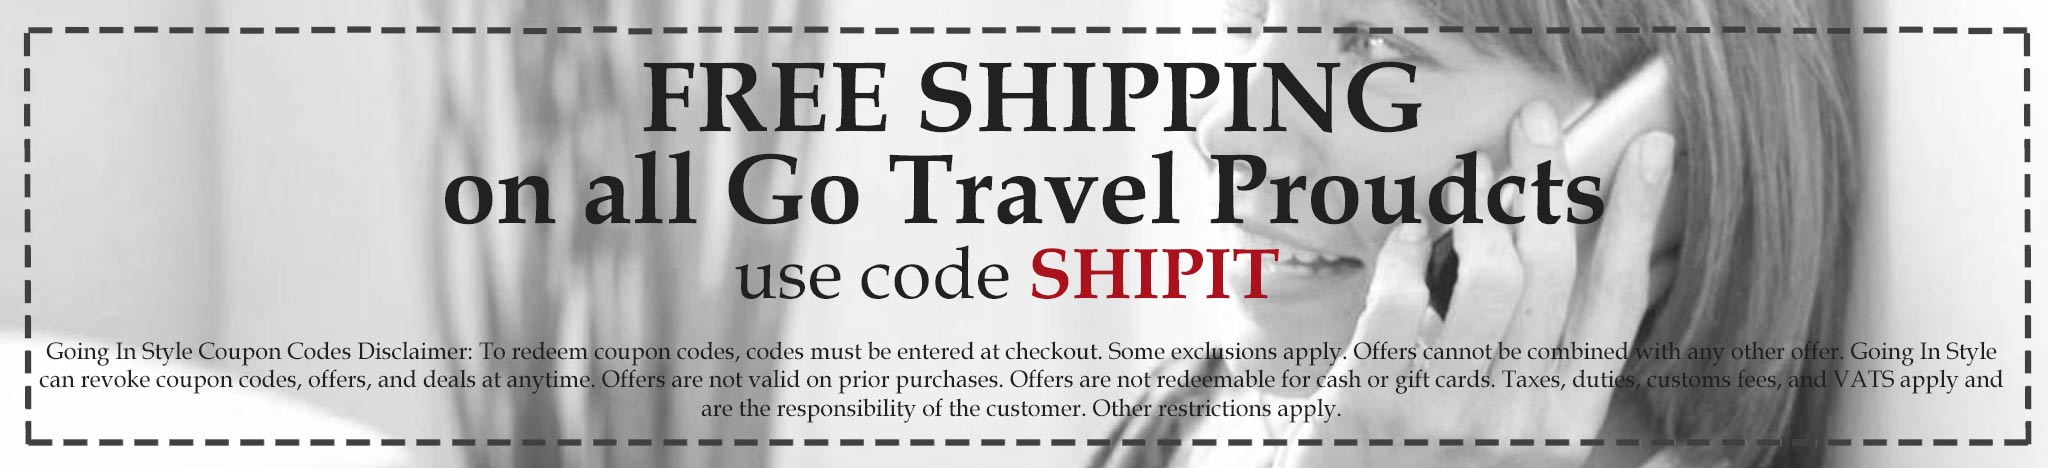 go travel products coupon